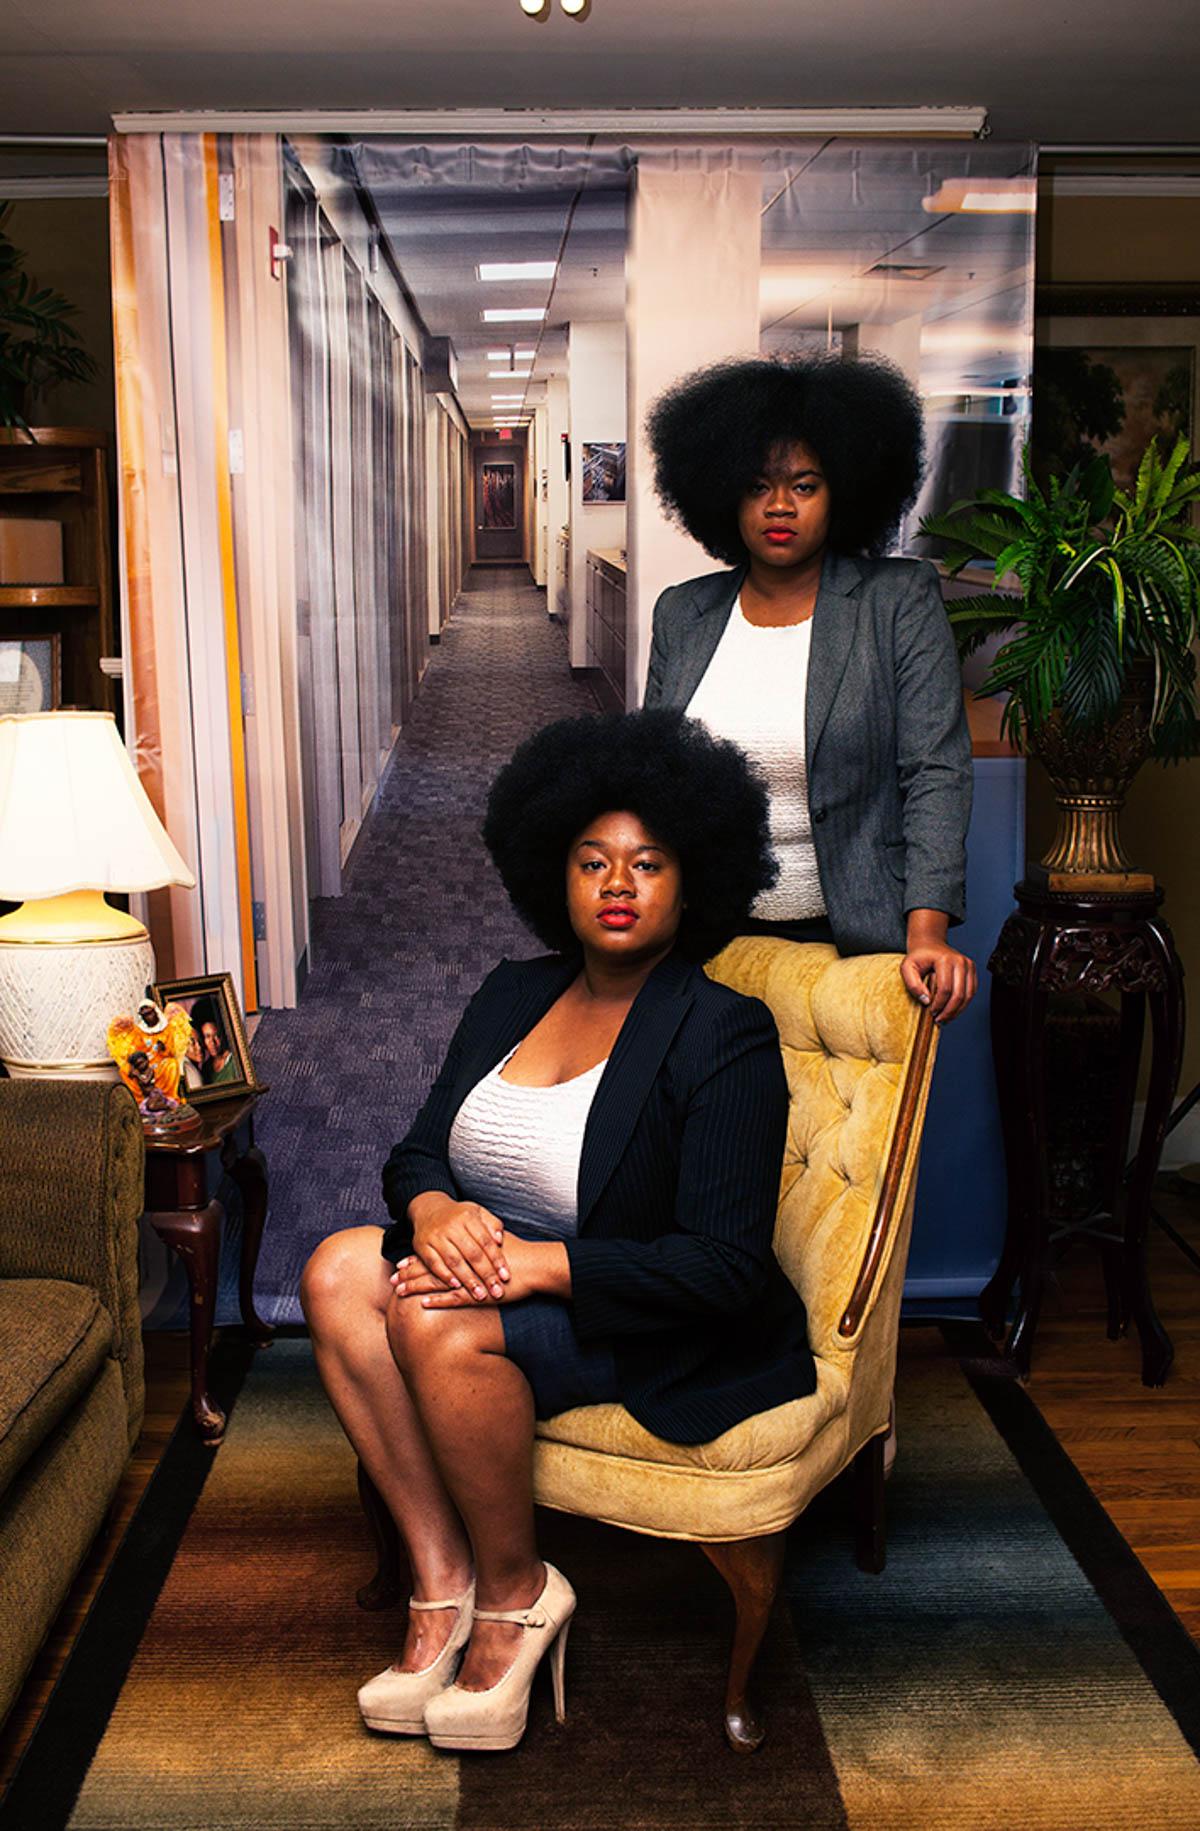 """Endia Beal, Sabrina and Katrina, 2015, from """"Am I What You're Looking For?"""", courtesy of the artist,from """"All Power: Visual Legacies of the Black Panther Party,"""" PCNW 2018"""